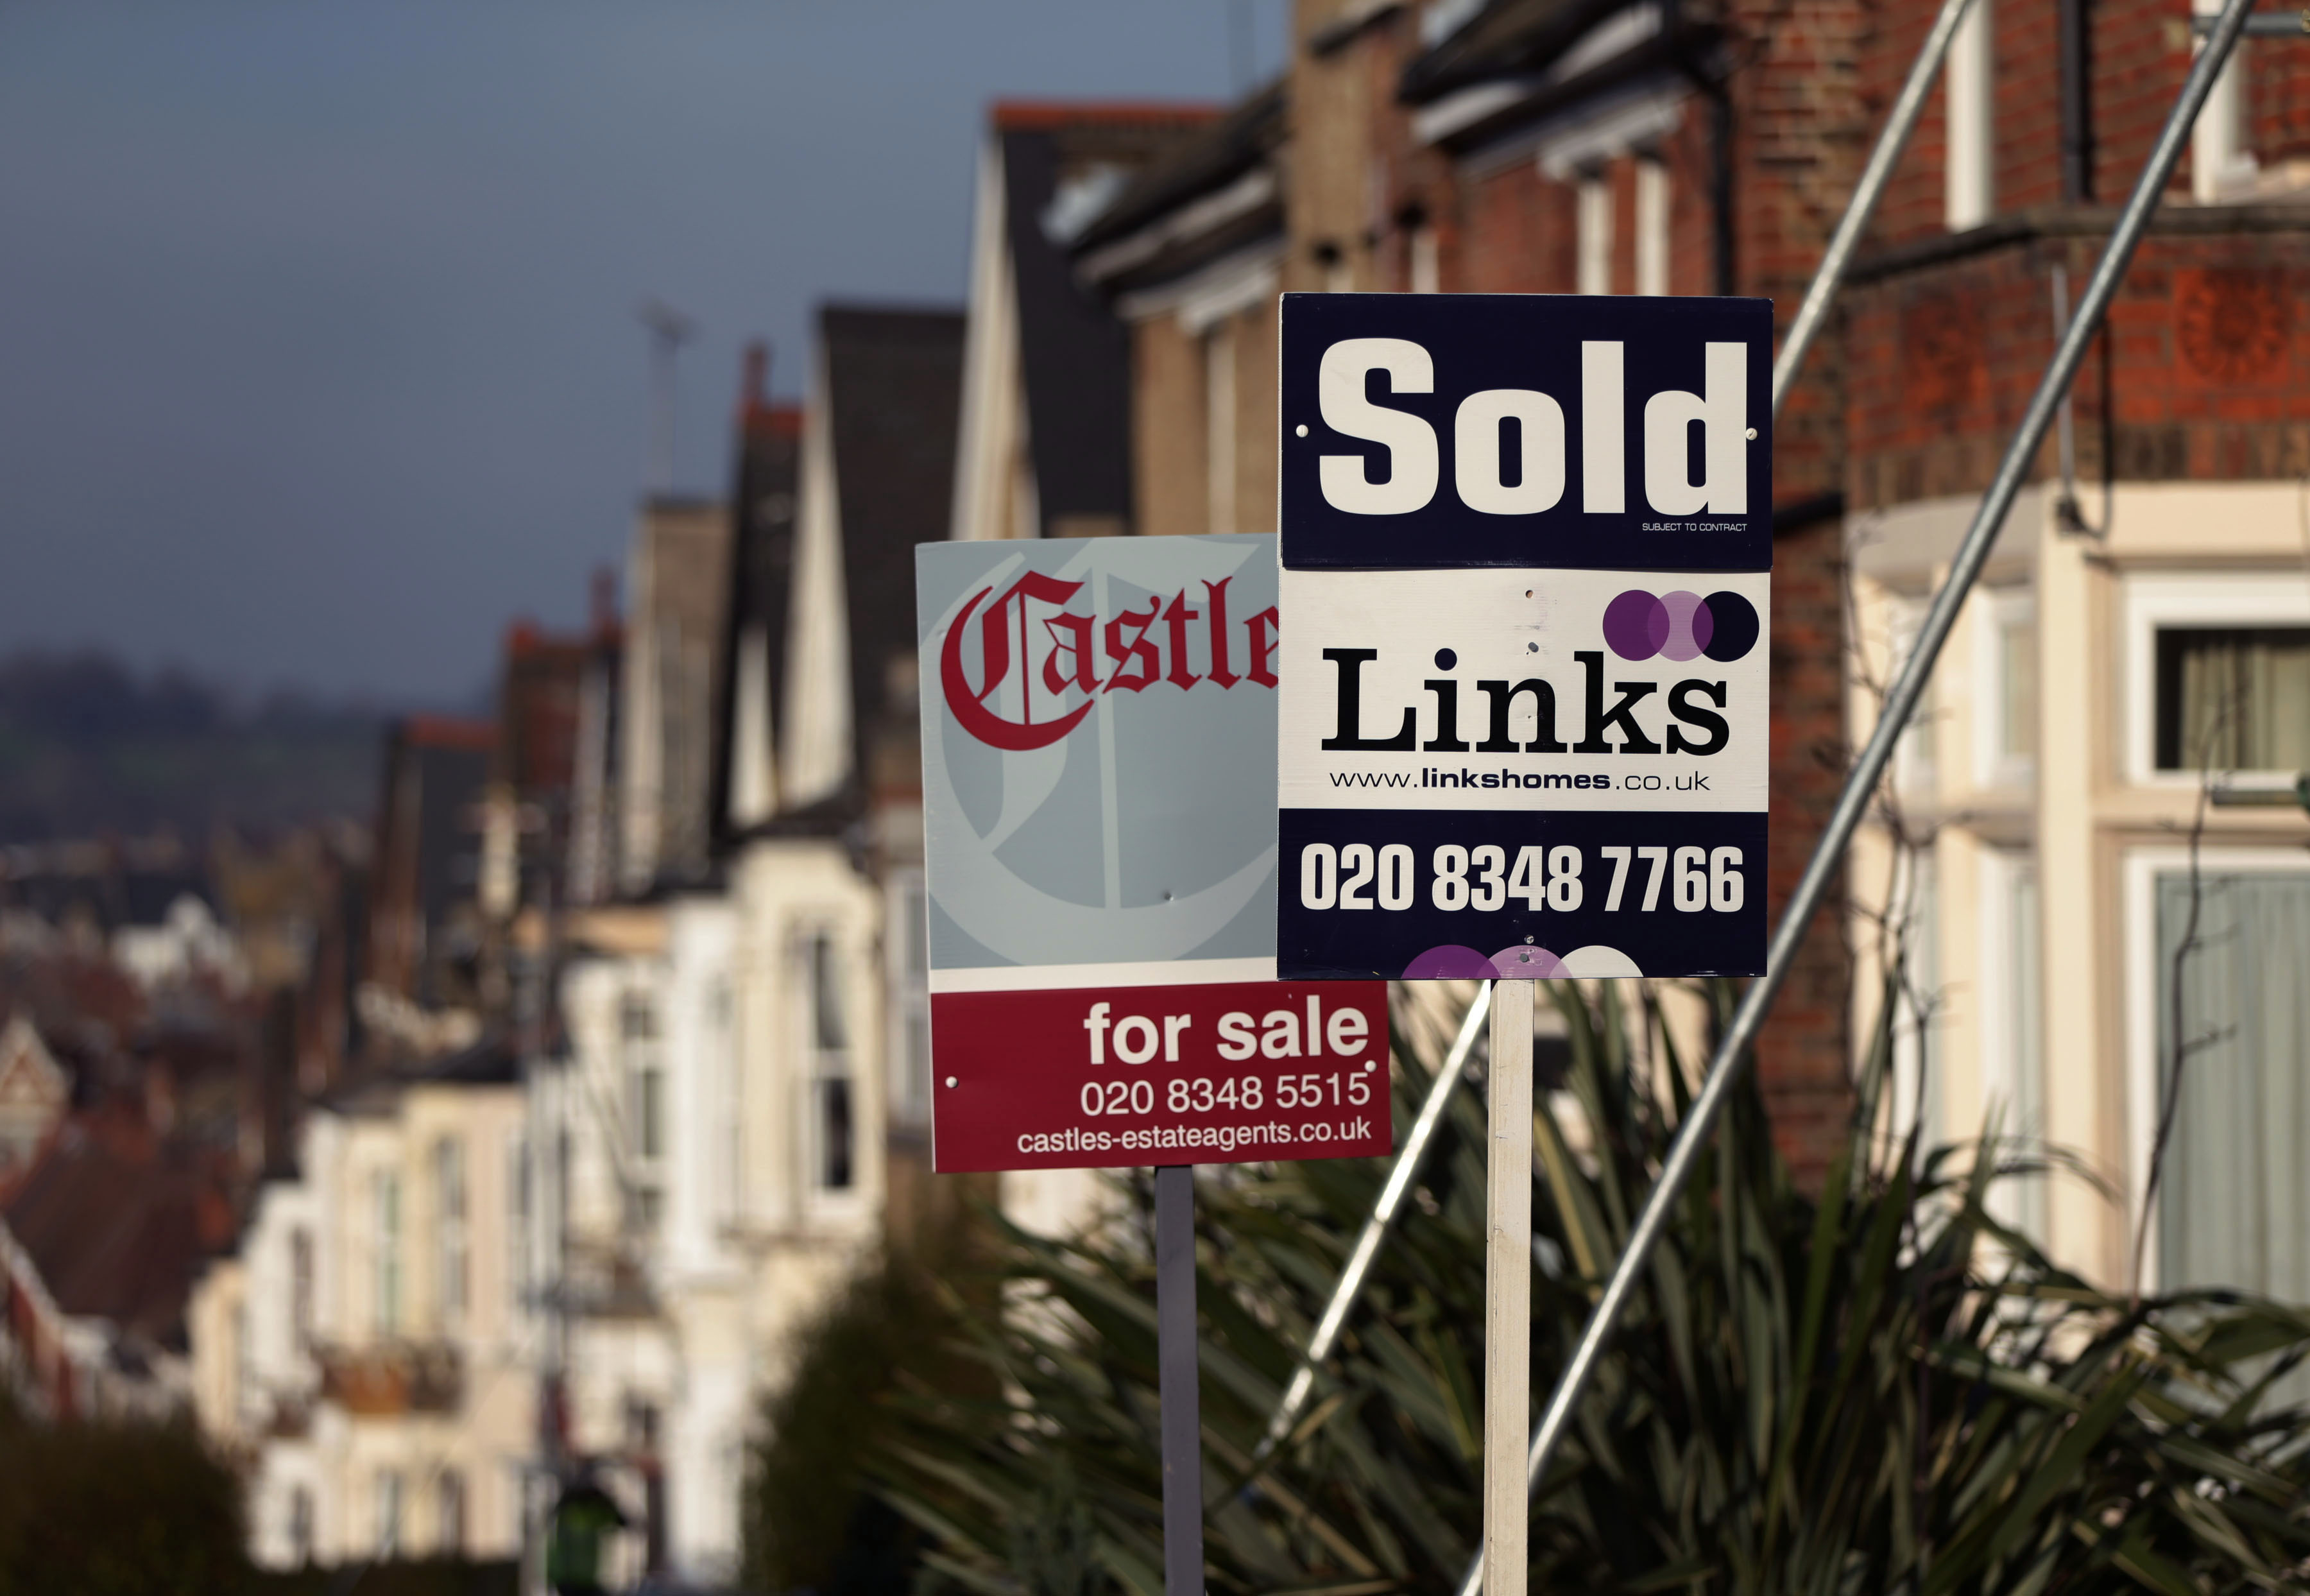 Calls for stamp duty relief in Wales following Chancellor's announcement | ITV News